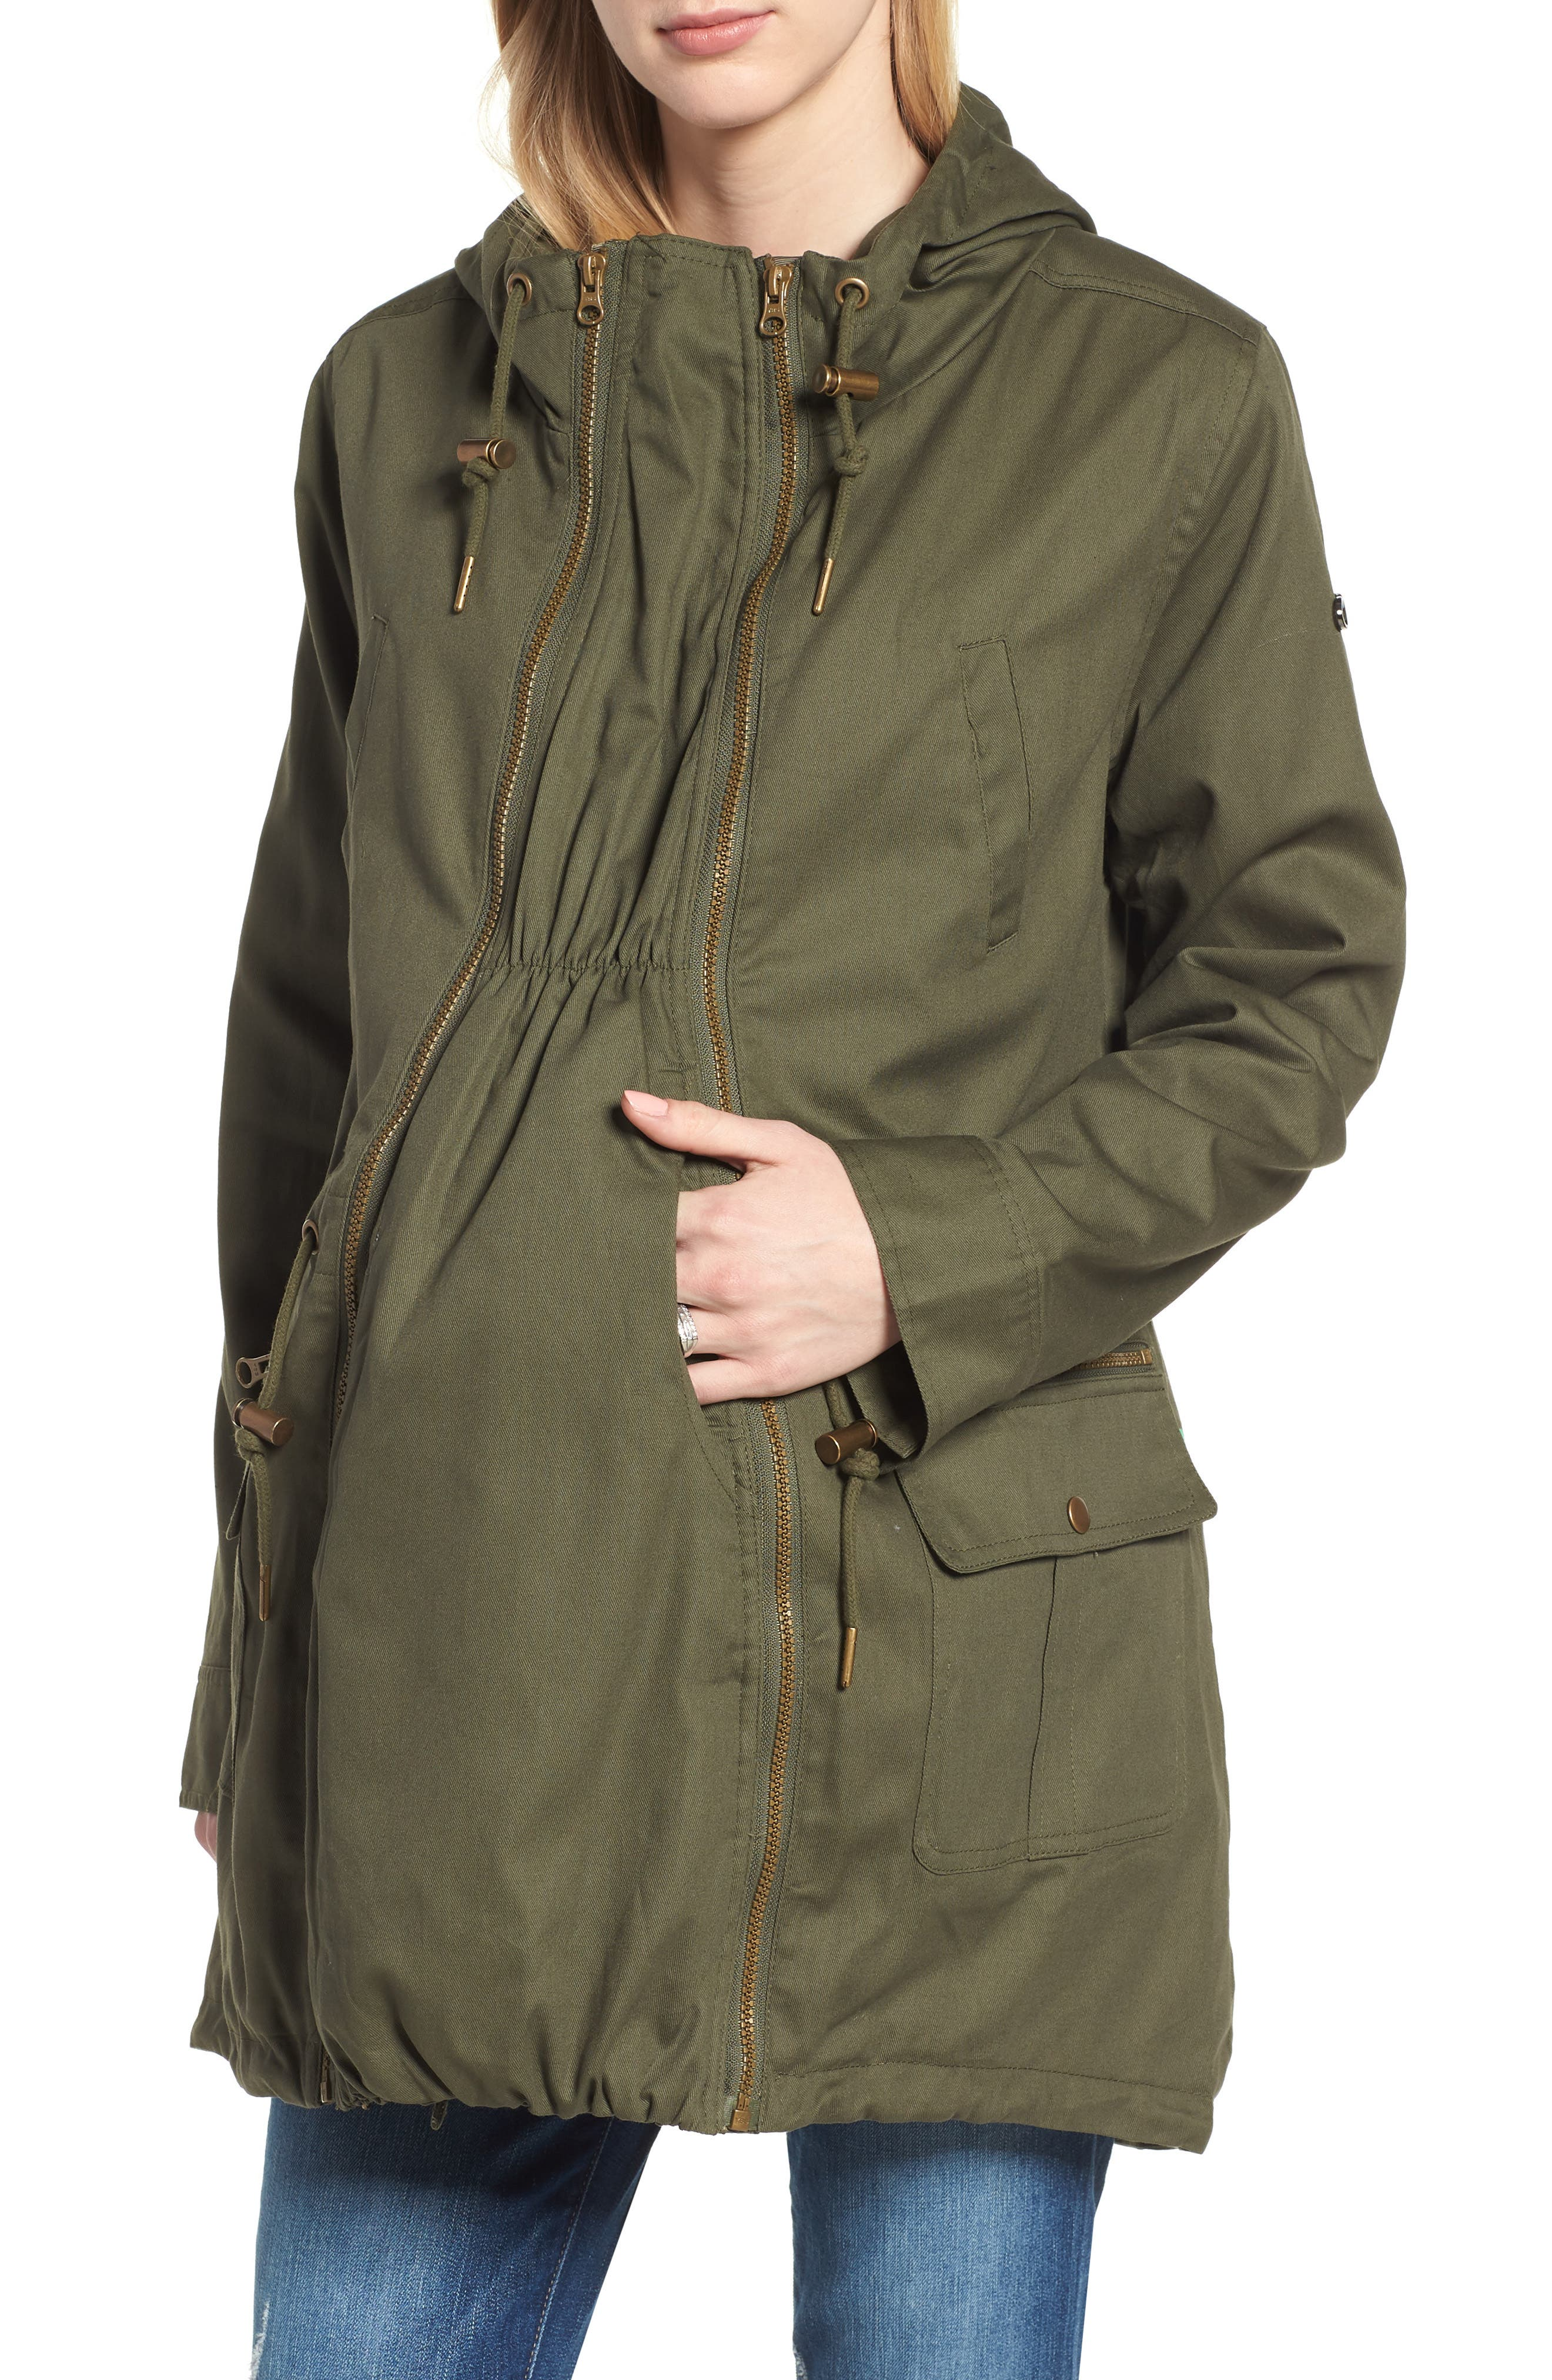 Convertible Military 3-in-1 Maternity/Nursing Jacket,                         Main,                         color, KHAKI GREEN